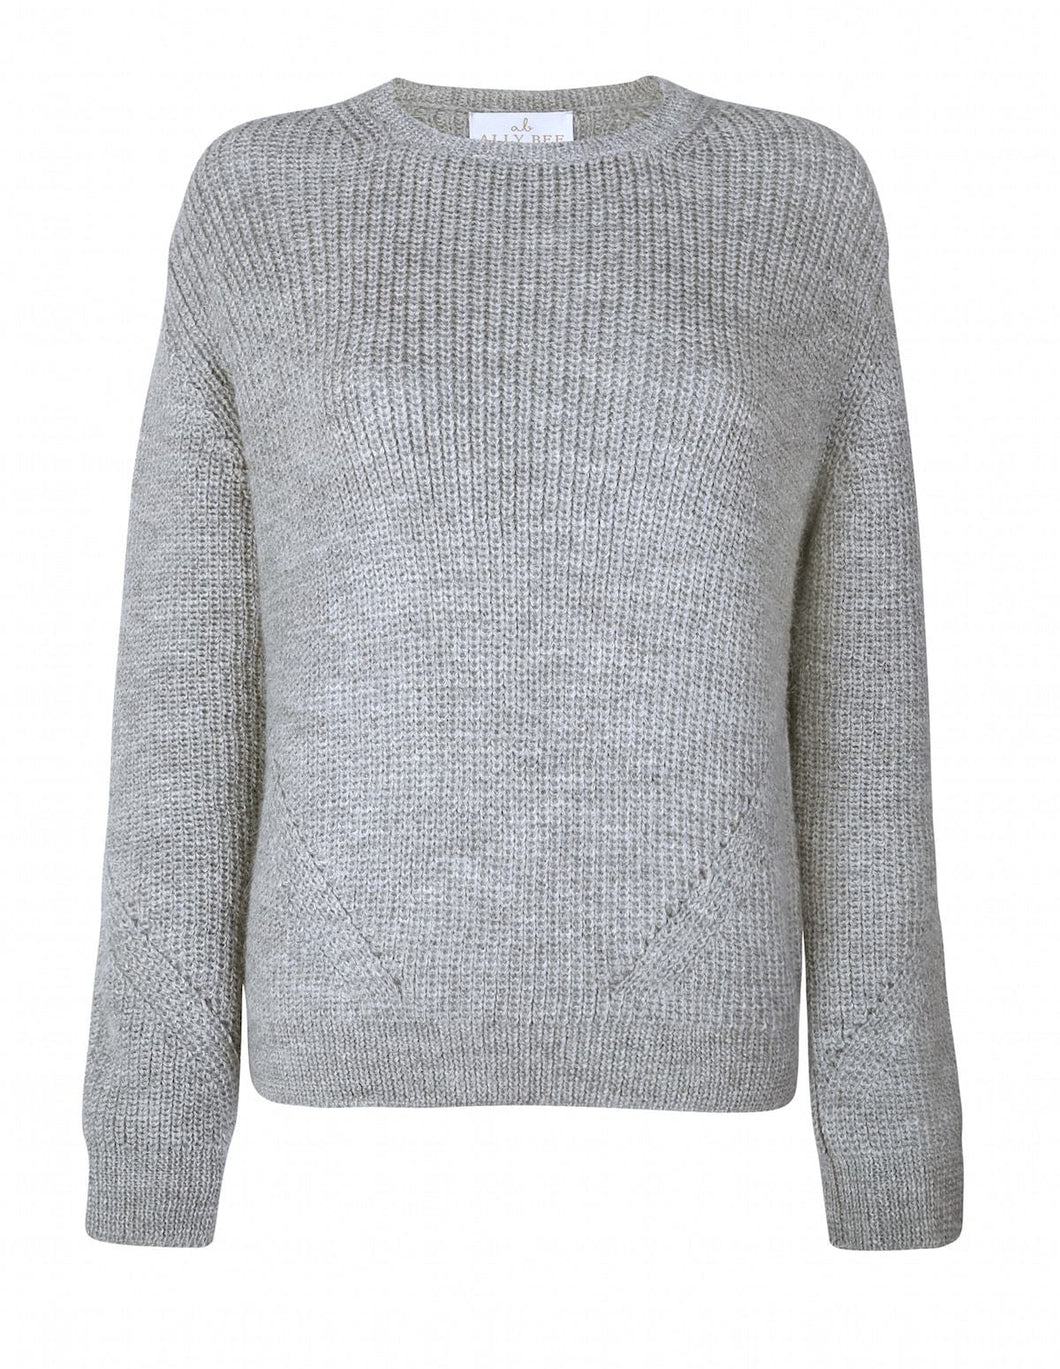 Ally Bee Alpaca & Wool Jumper in soft Grey by Ally Bee